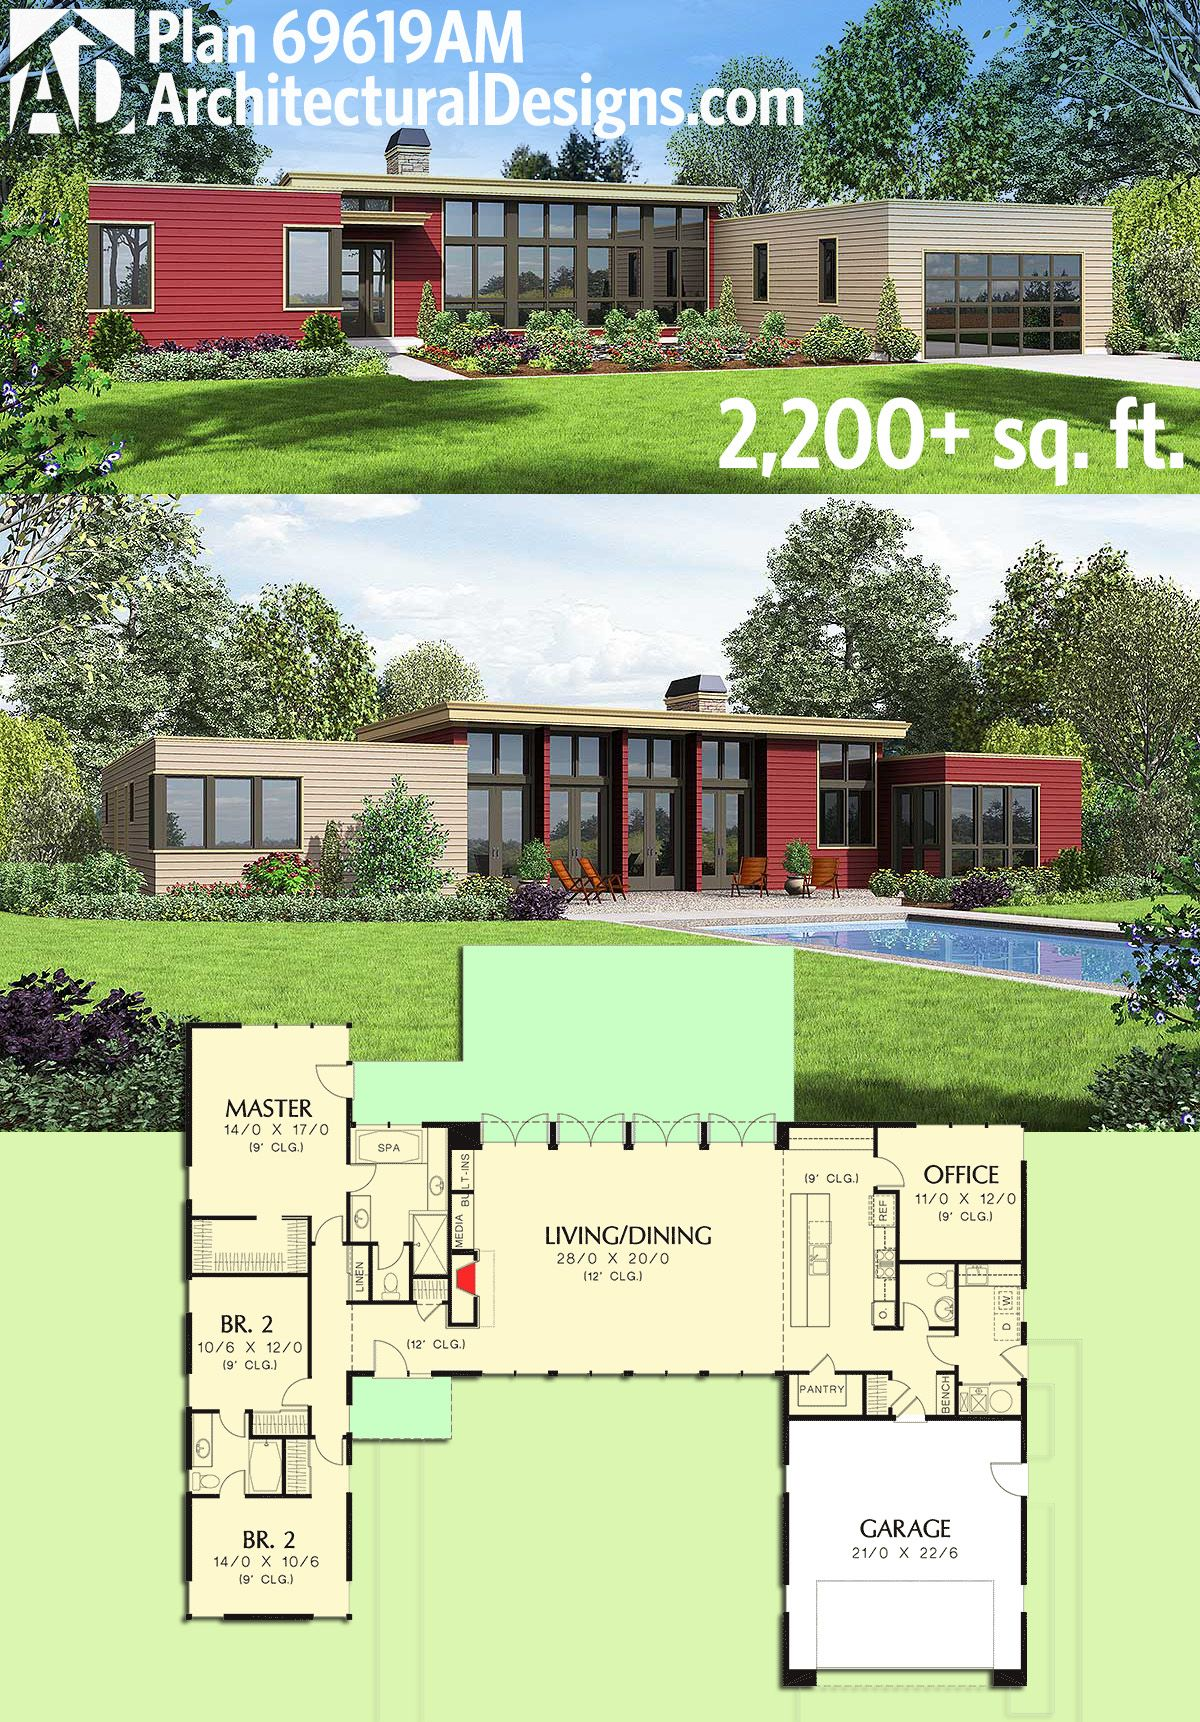 modern open concept bungalow house plans. Plan 69619AM  3 Bed Modern House with Open Concept Layout